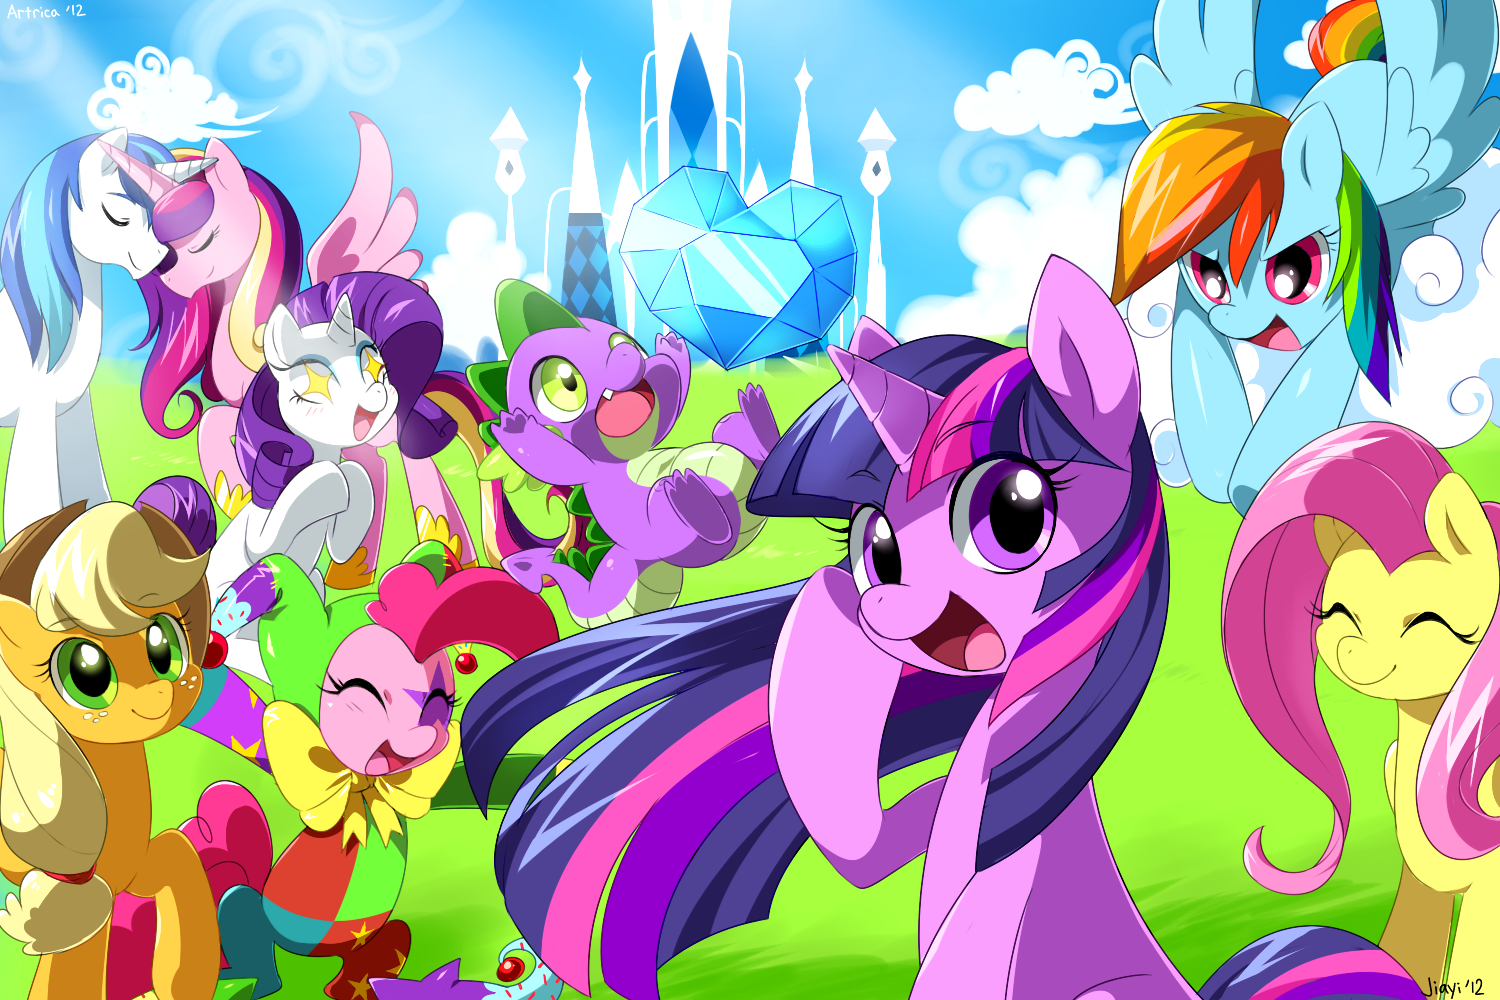 MyLittlePony_Friendship_is_Magic_Wallpapersize_Fanart.png